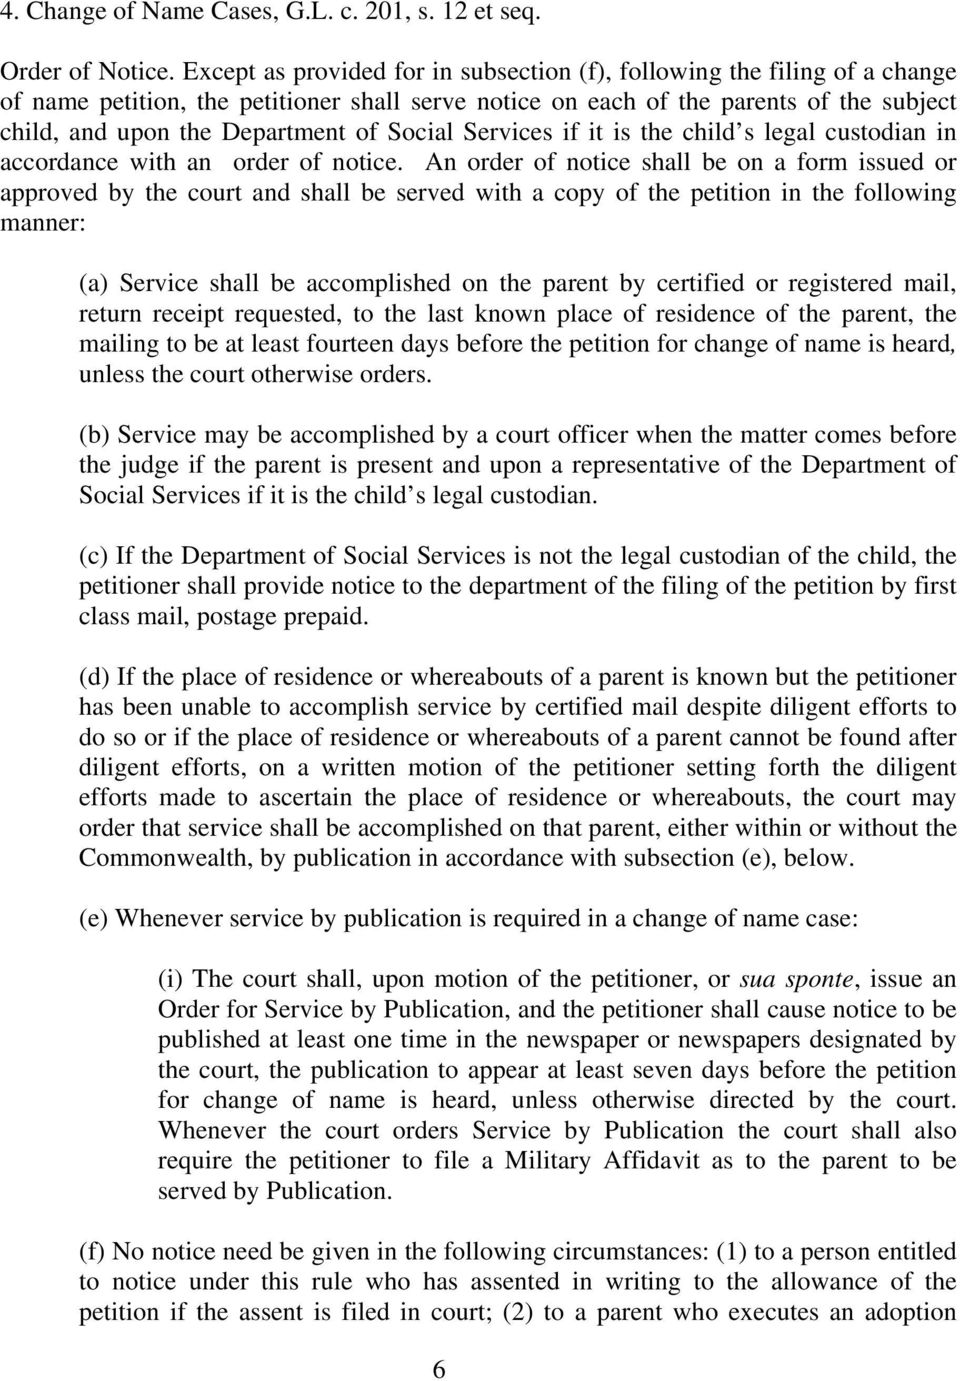 Social Services if it is the child s legal custodian in accordance with an order of notice.